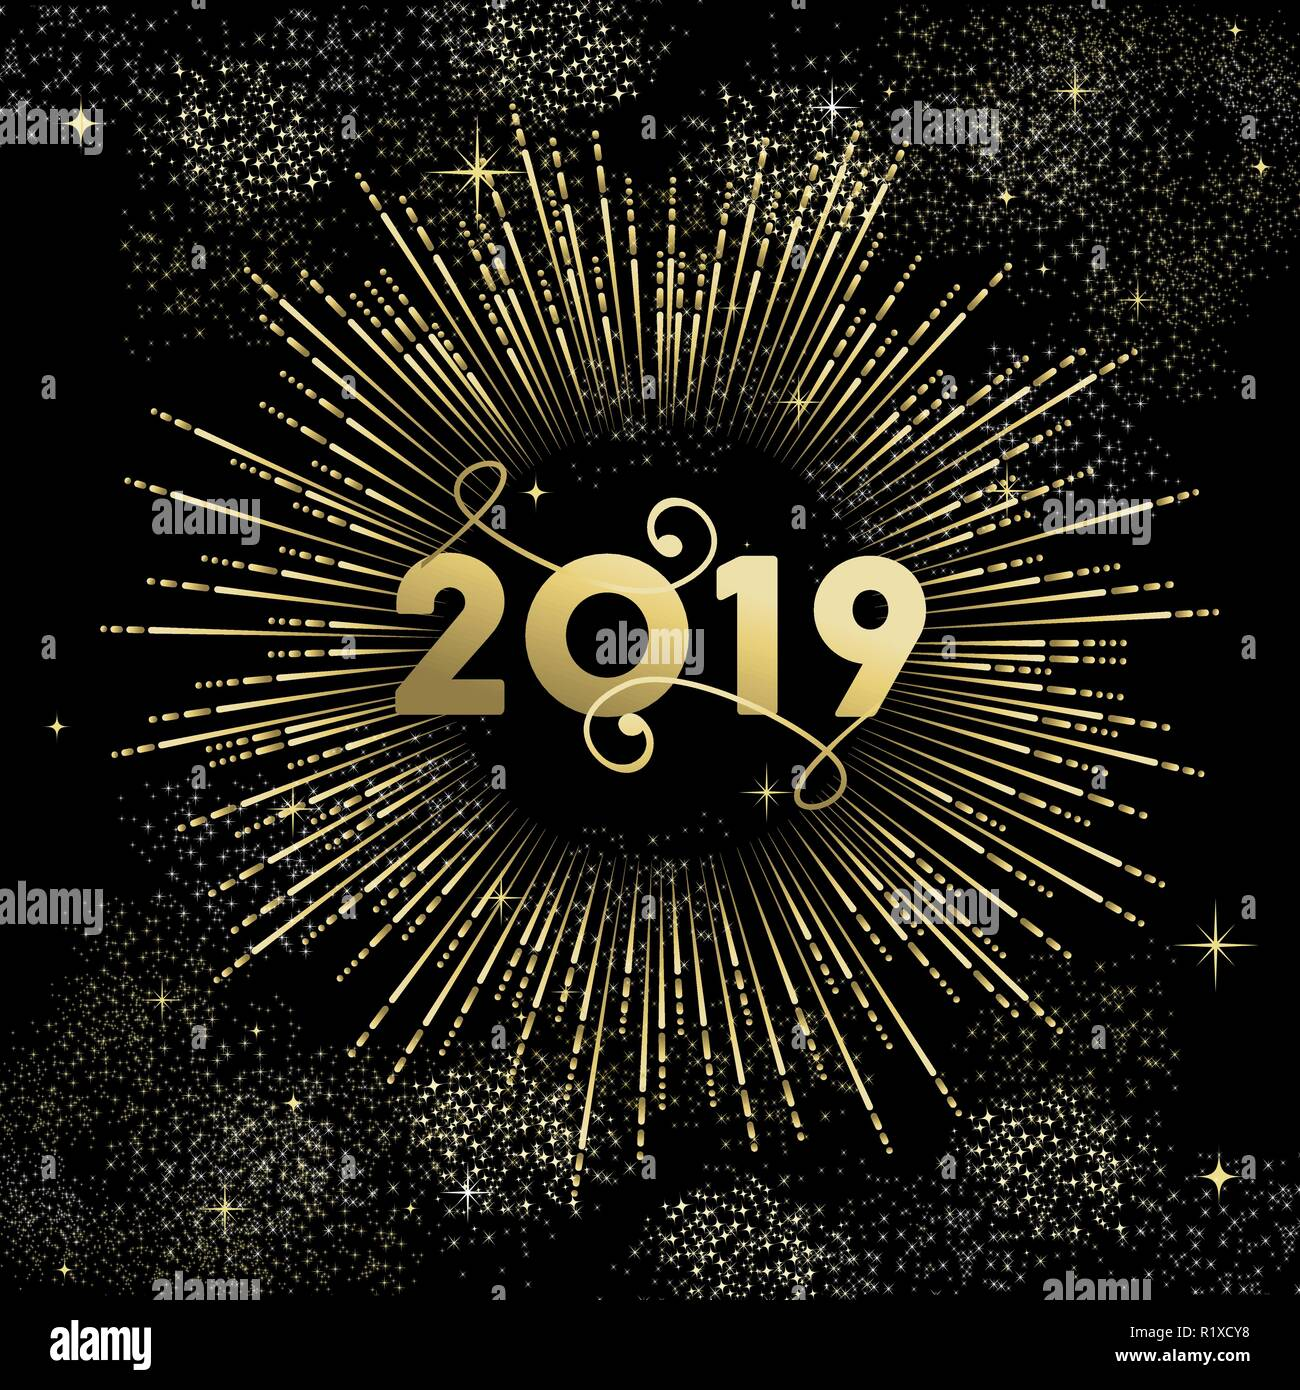 happy new year 2019 greeting card design with gold party firework explosion on night sky